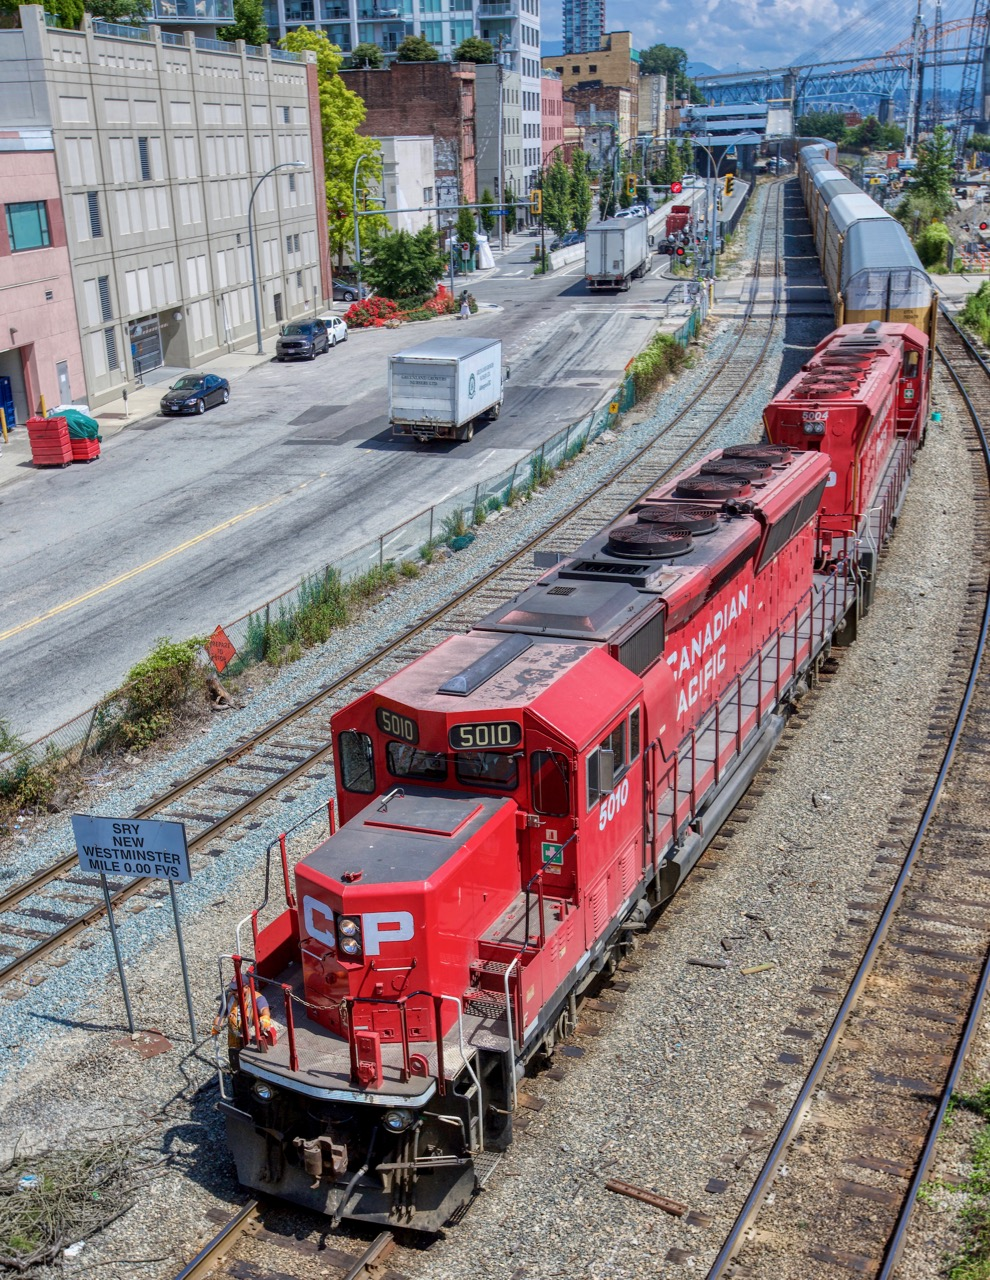 Canadian Pacific Railway (CP) locomotive 5010 leads train, New Westminster B.C.